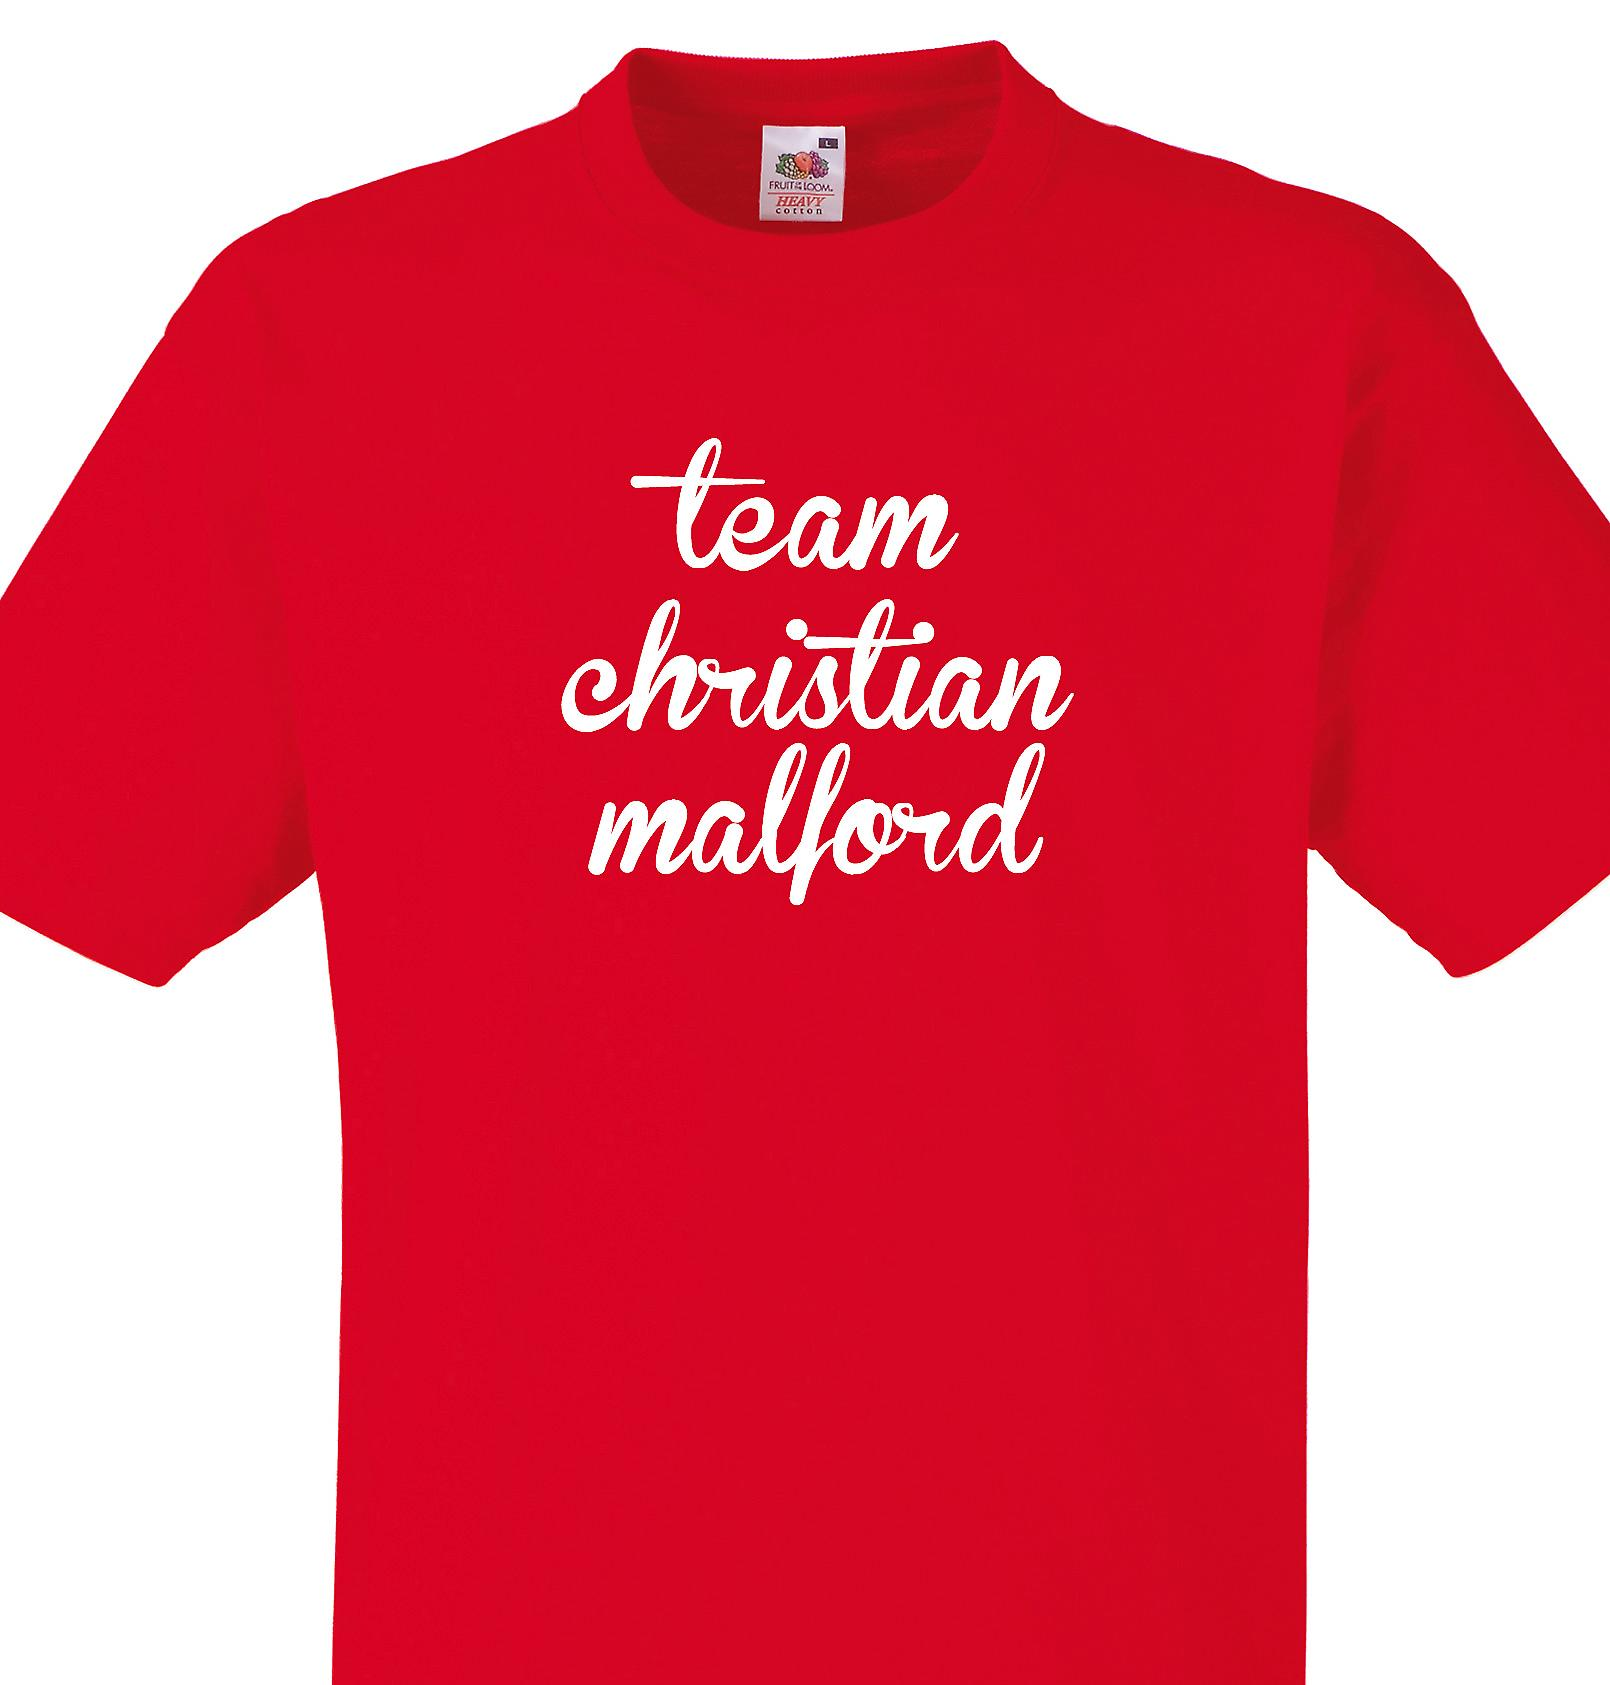 Team Christian malford Red T shirt